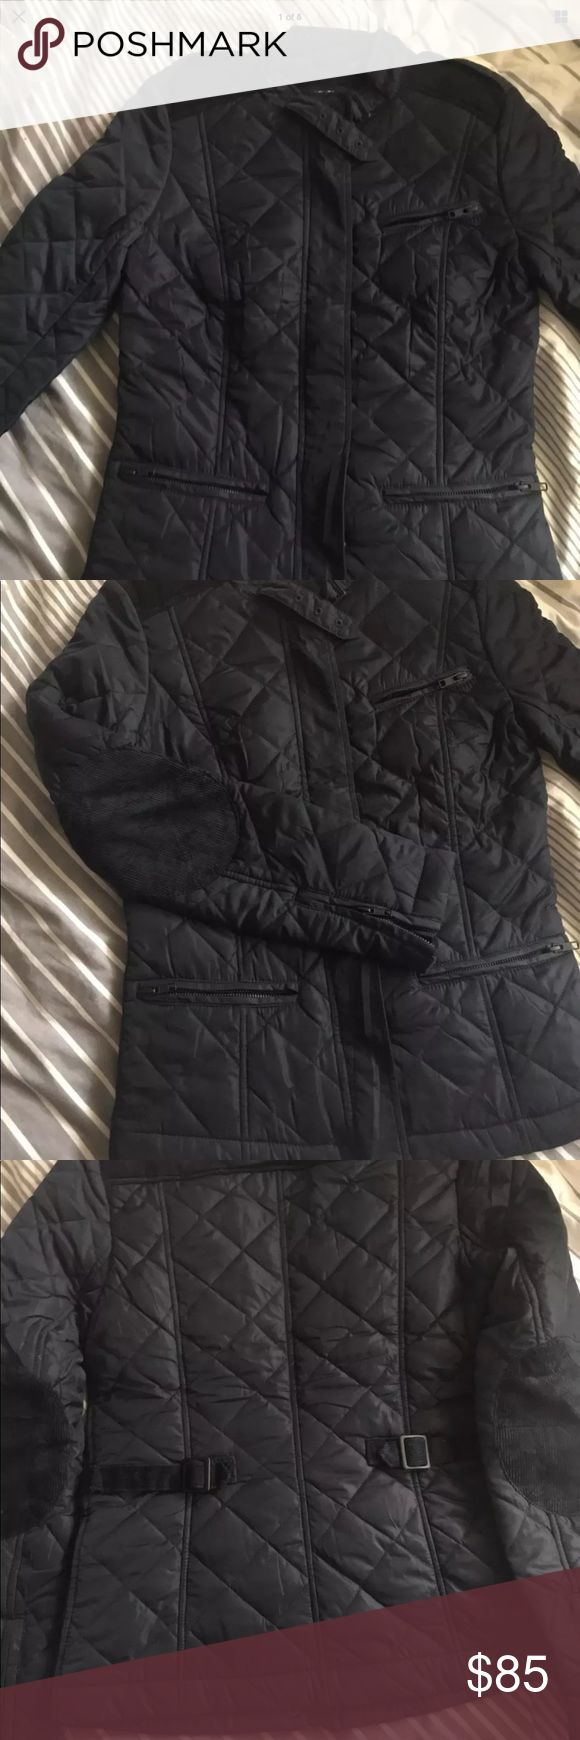 French Connection Black Quilted Jacket! NWT Sz 8 Chic Black Quilted Moto Jacket by Designer French Connection! Tons of Details....see pics!   Brand New with Tags! Original Price $198   Sz 8   For you or GREAT Christmas gift!!! French Connection Jackets & Coats